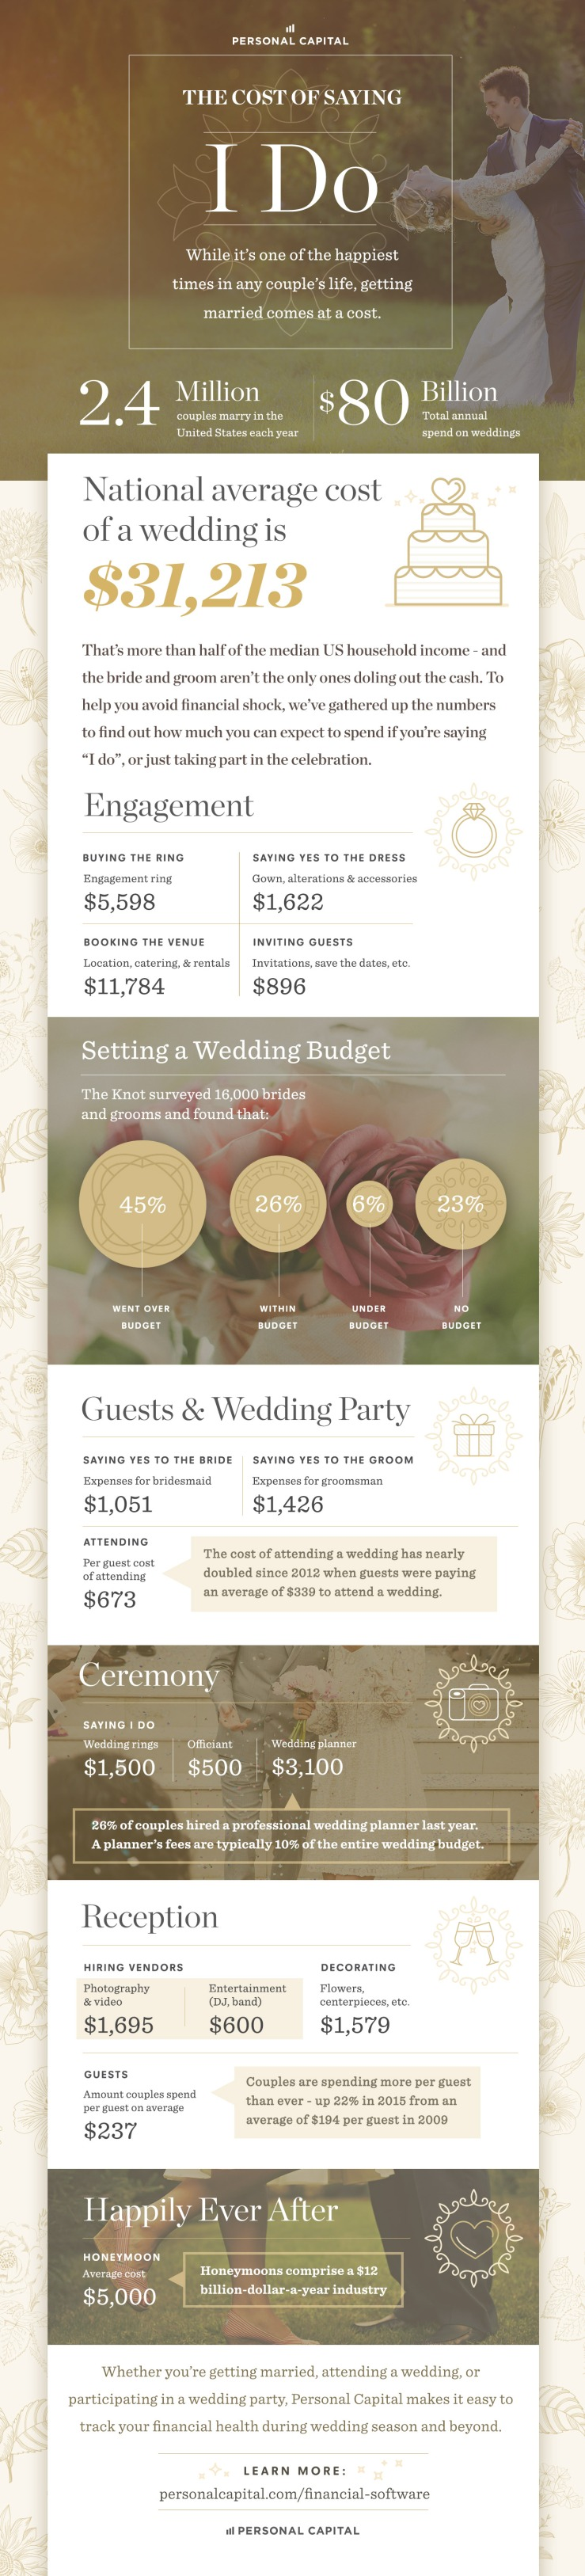 Cost of Saying I Do LRG.jpg